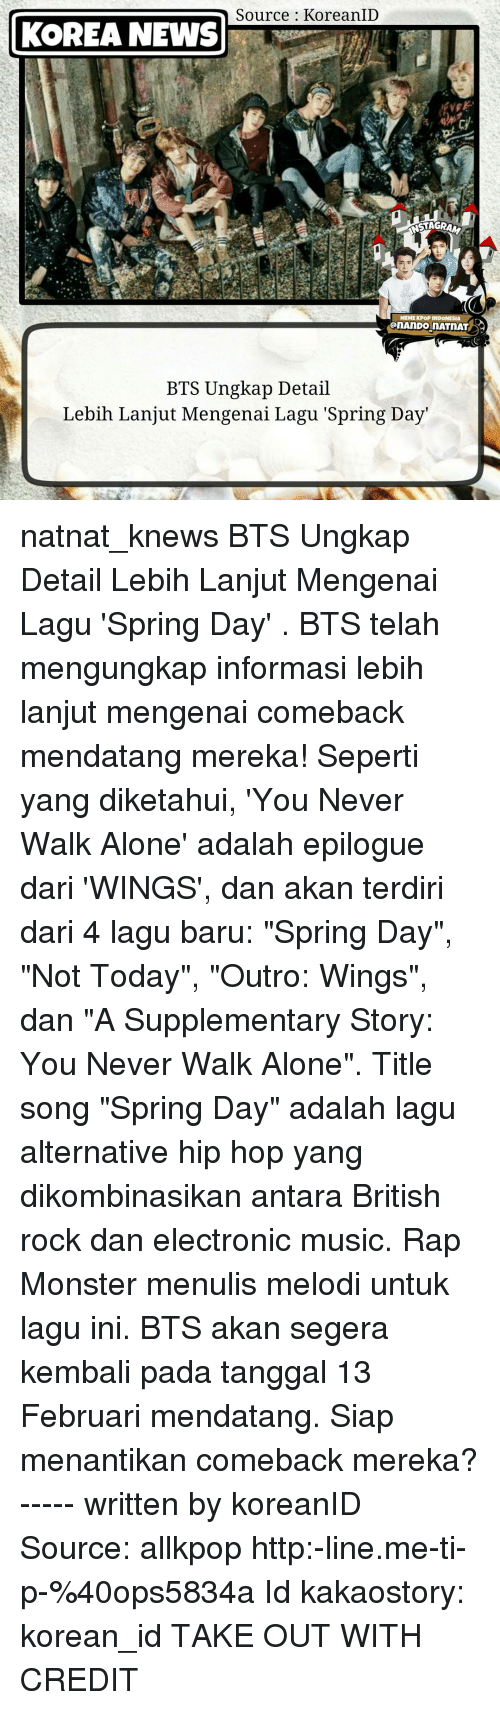 🅱️ 25+ Best Memes About Spring Day Bts | Spring Day Bts Memes